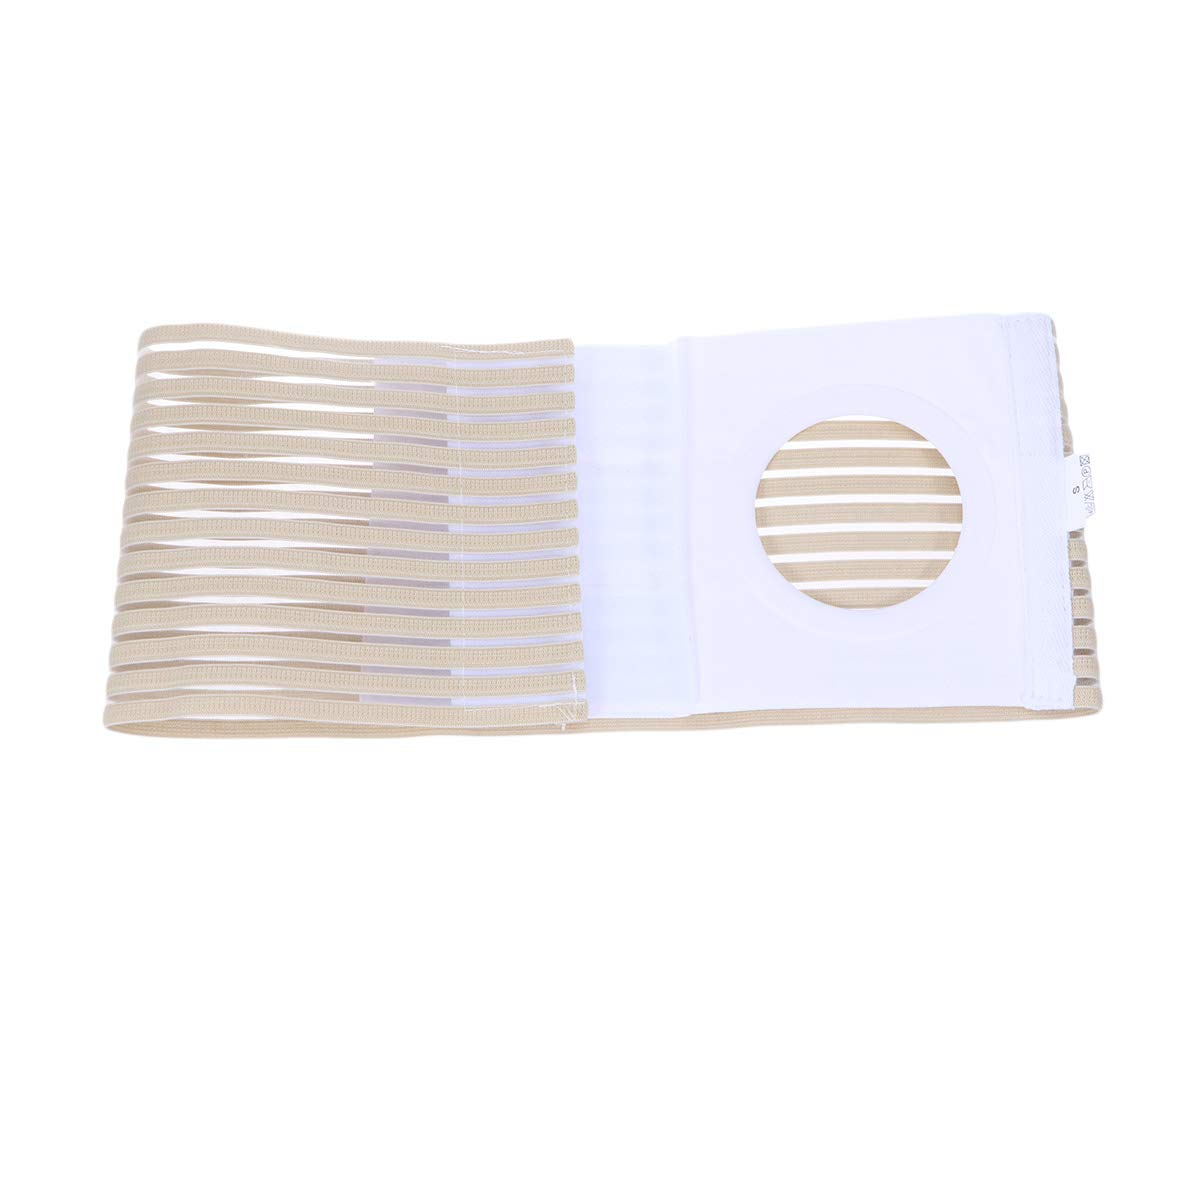 HEALLILY Animer and price revision Postoperation Medical Ostomy Bellyband Belt 2021new shipping free shipping Fixable Ela